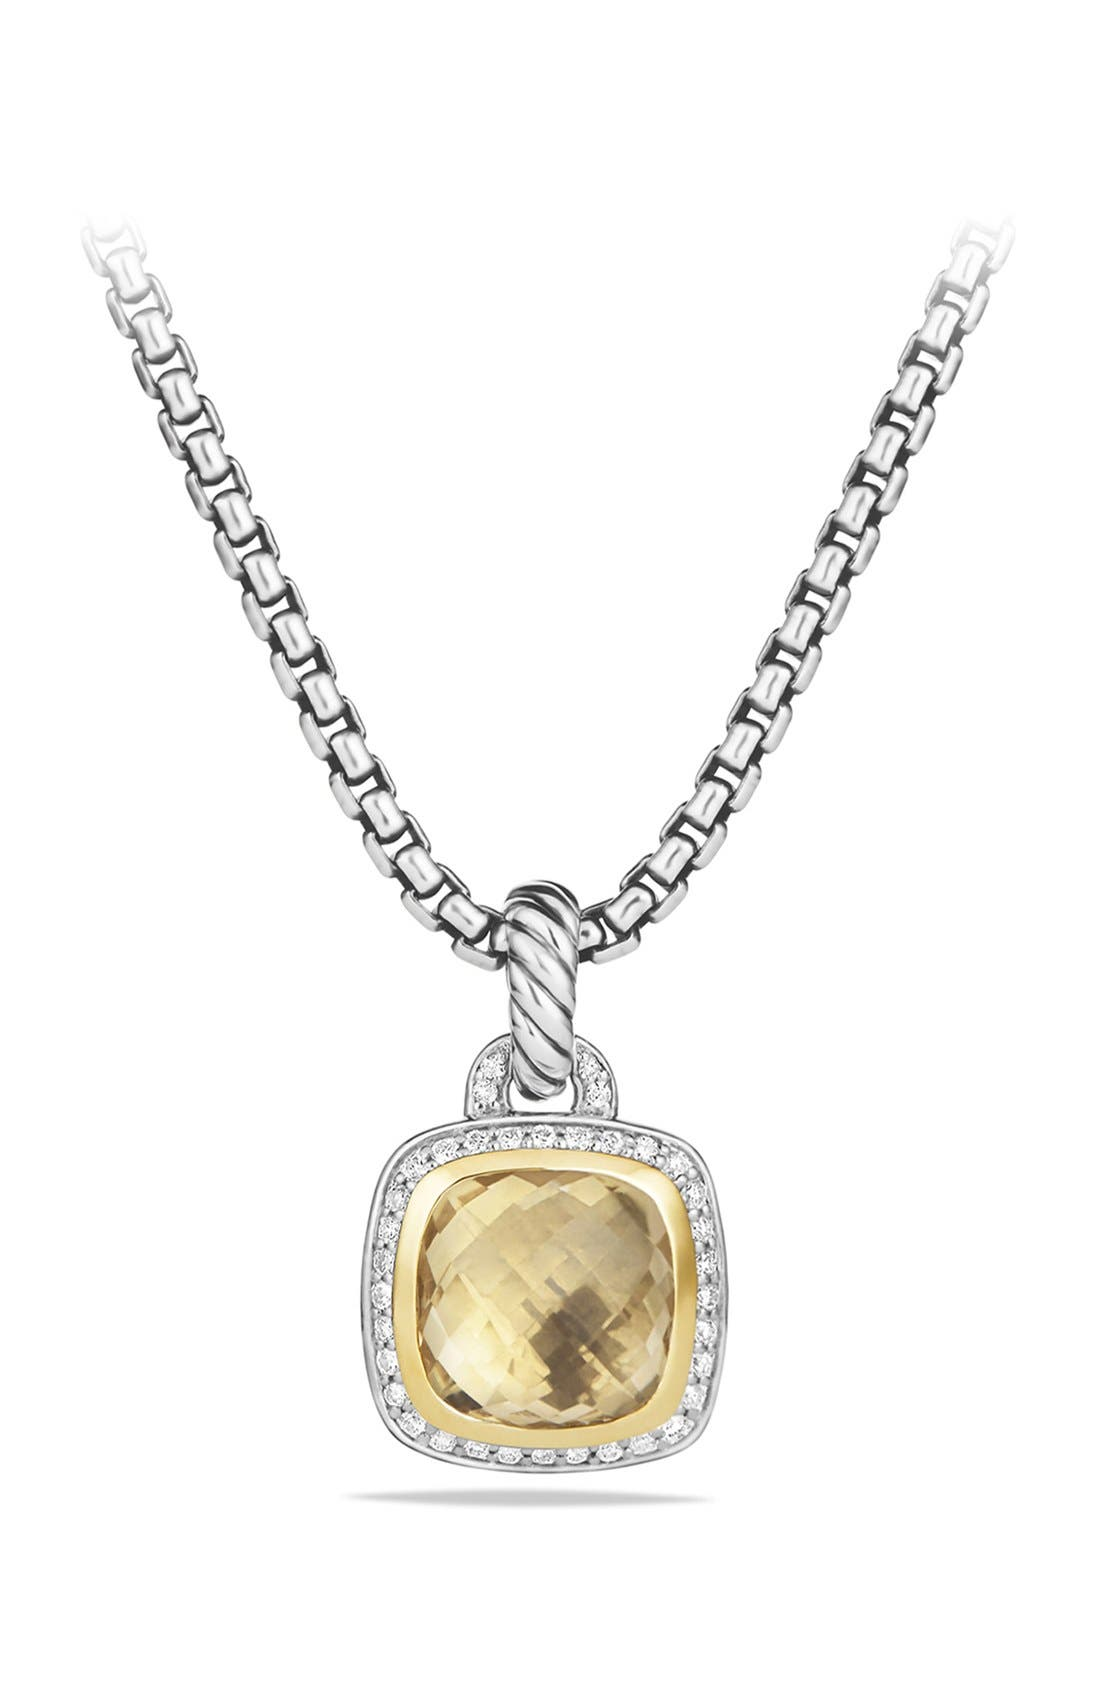 David Yurman 'Albion' Pendant with Diamonds and 18K Gold